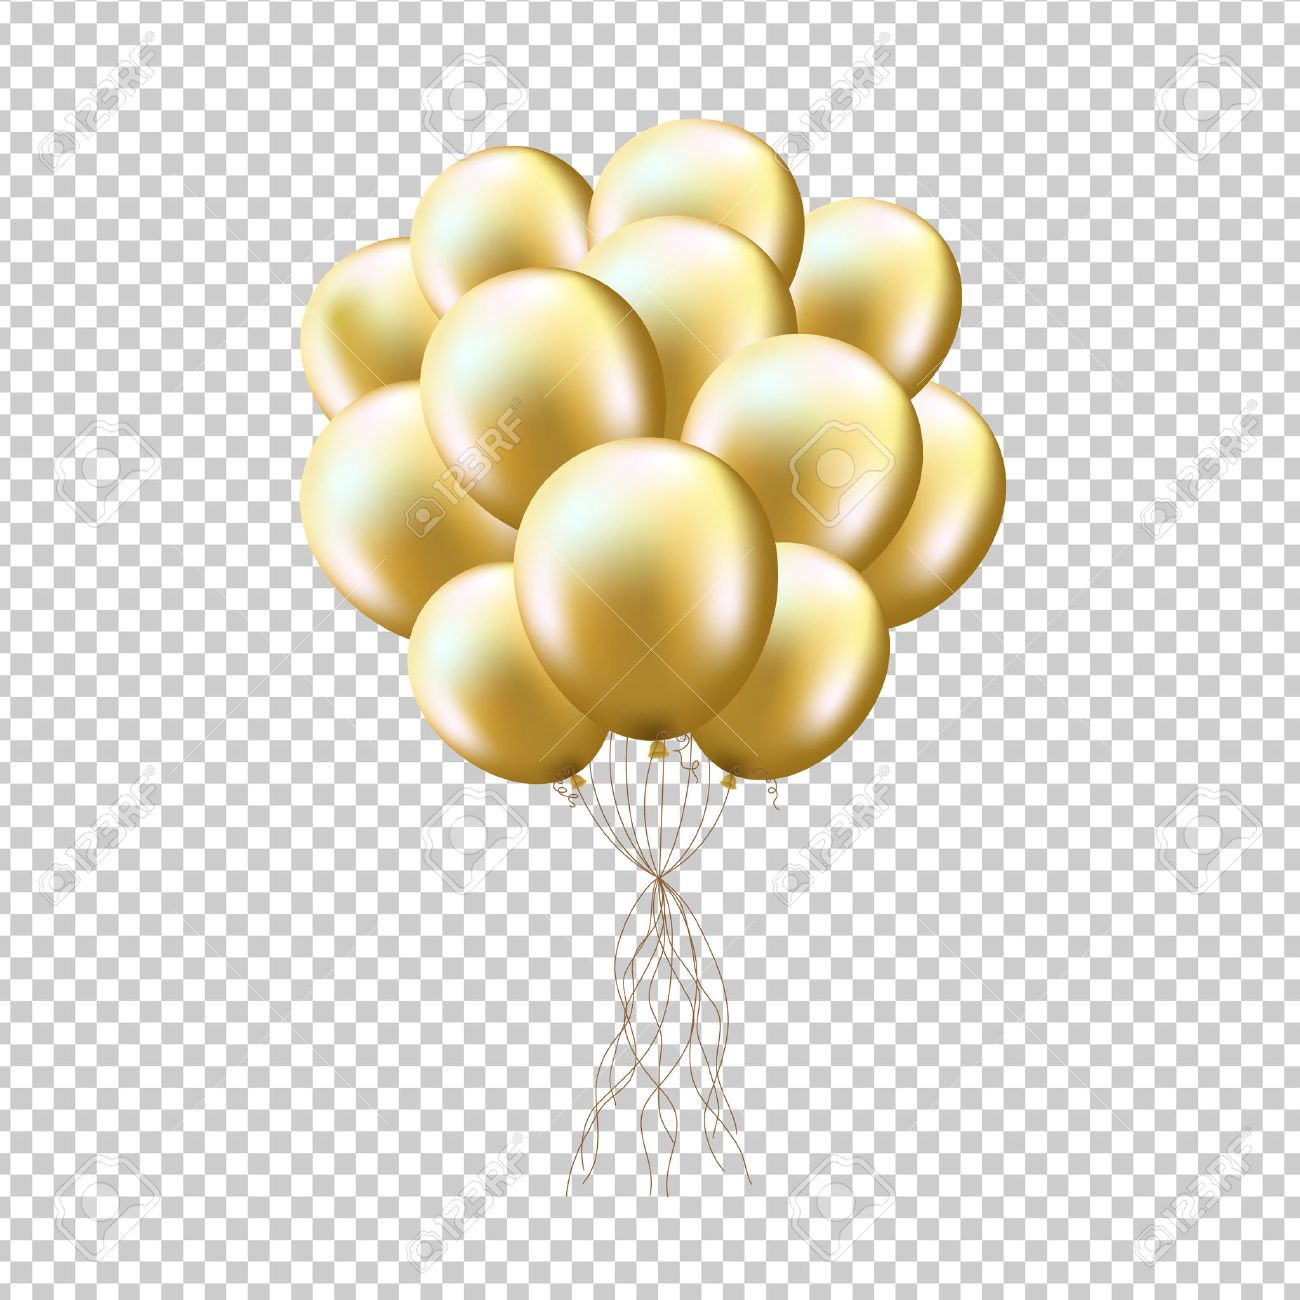 Golden Balloons Sheaf, Isolated on Transparent Background, With Gradient Mesh, Vector Illustration - 55086618